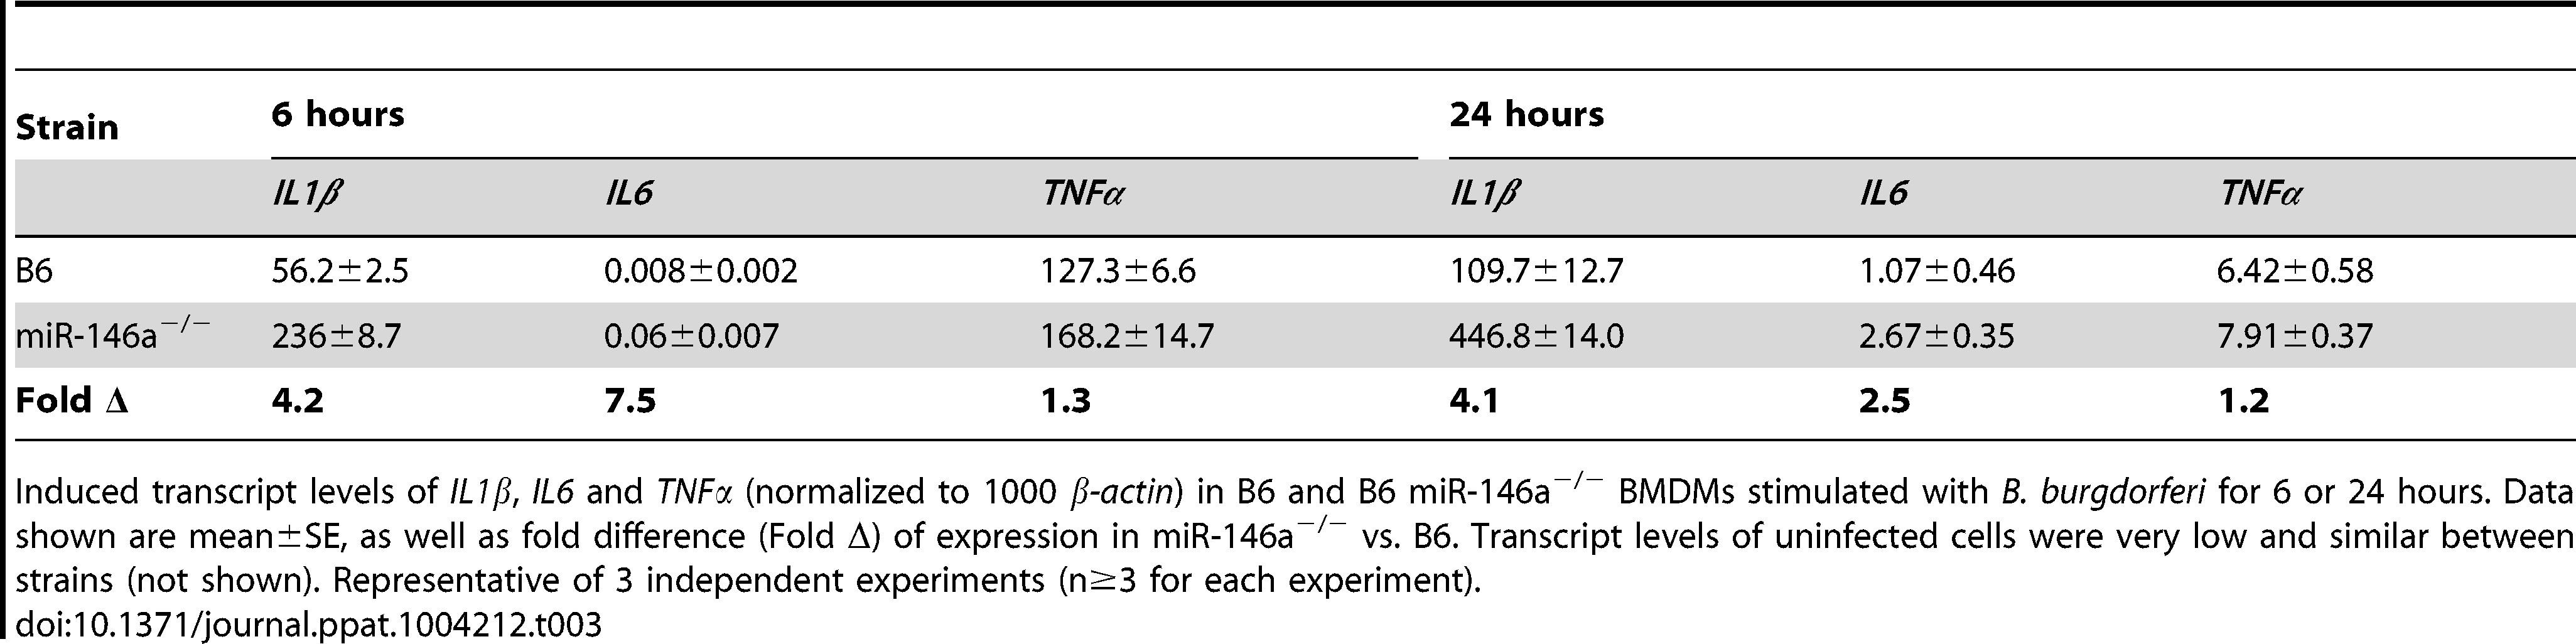 mRNA expression of induced cytokines in BMDMs from B6 and B6 miR-146a<sup>−/−</sup> mice after 6 and 24 hours stimulation with <i>B. burgdorferi</i>.